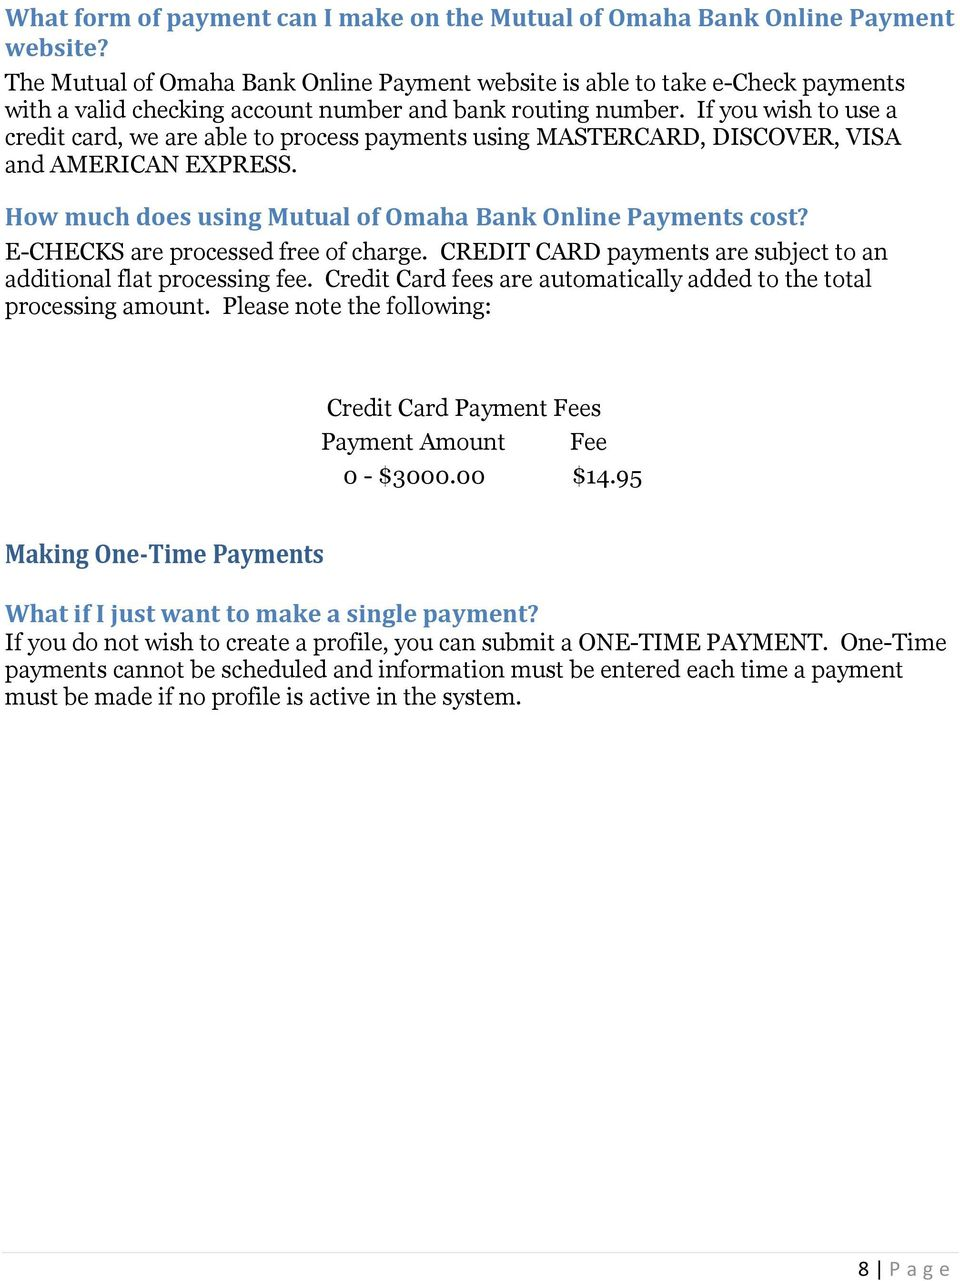 If you wish to use a credit card, we are able to process payments using MASTERCARD, DISCOVER, VISA and AMERICAN EXPRESS. How much does using Mutual of Omaha Bank Online Payments cost?